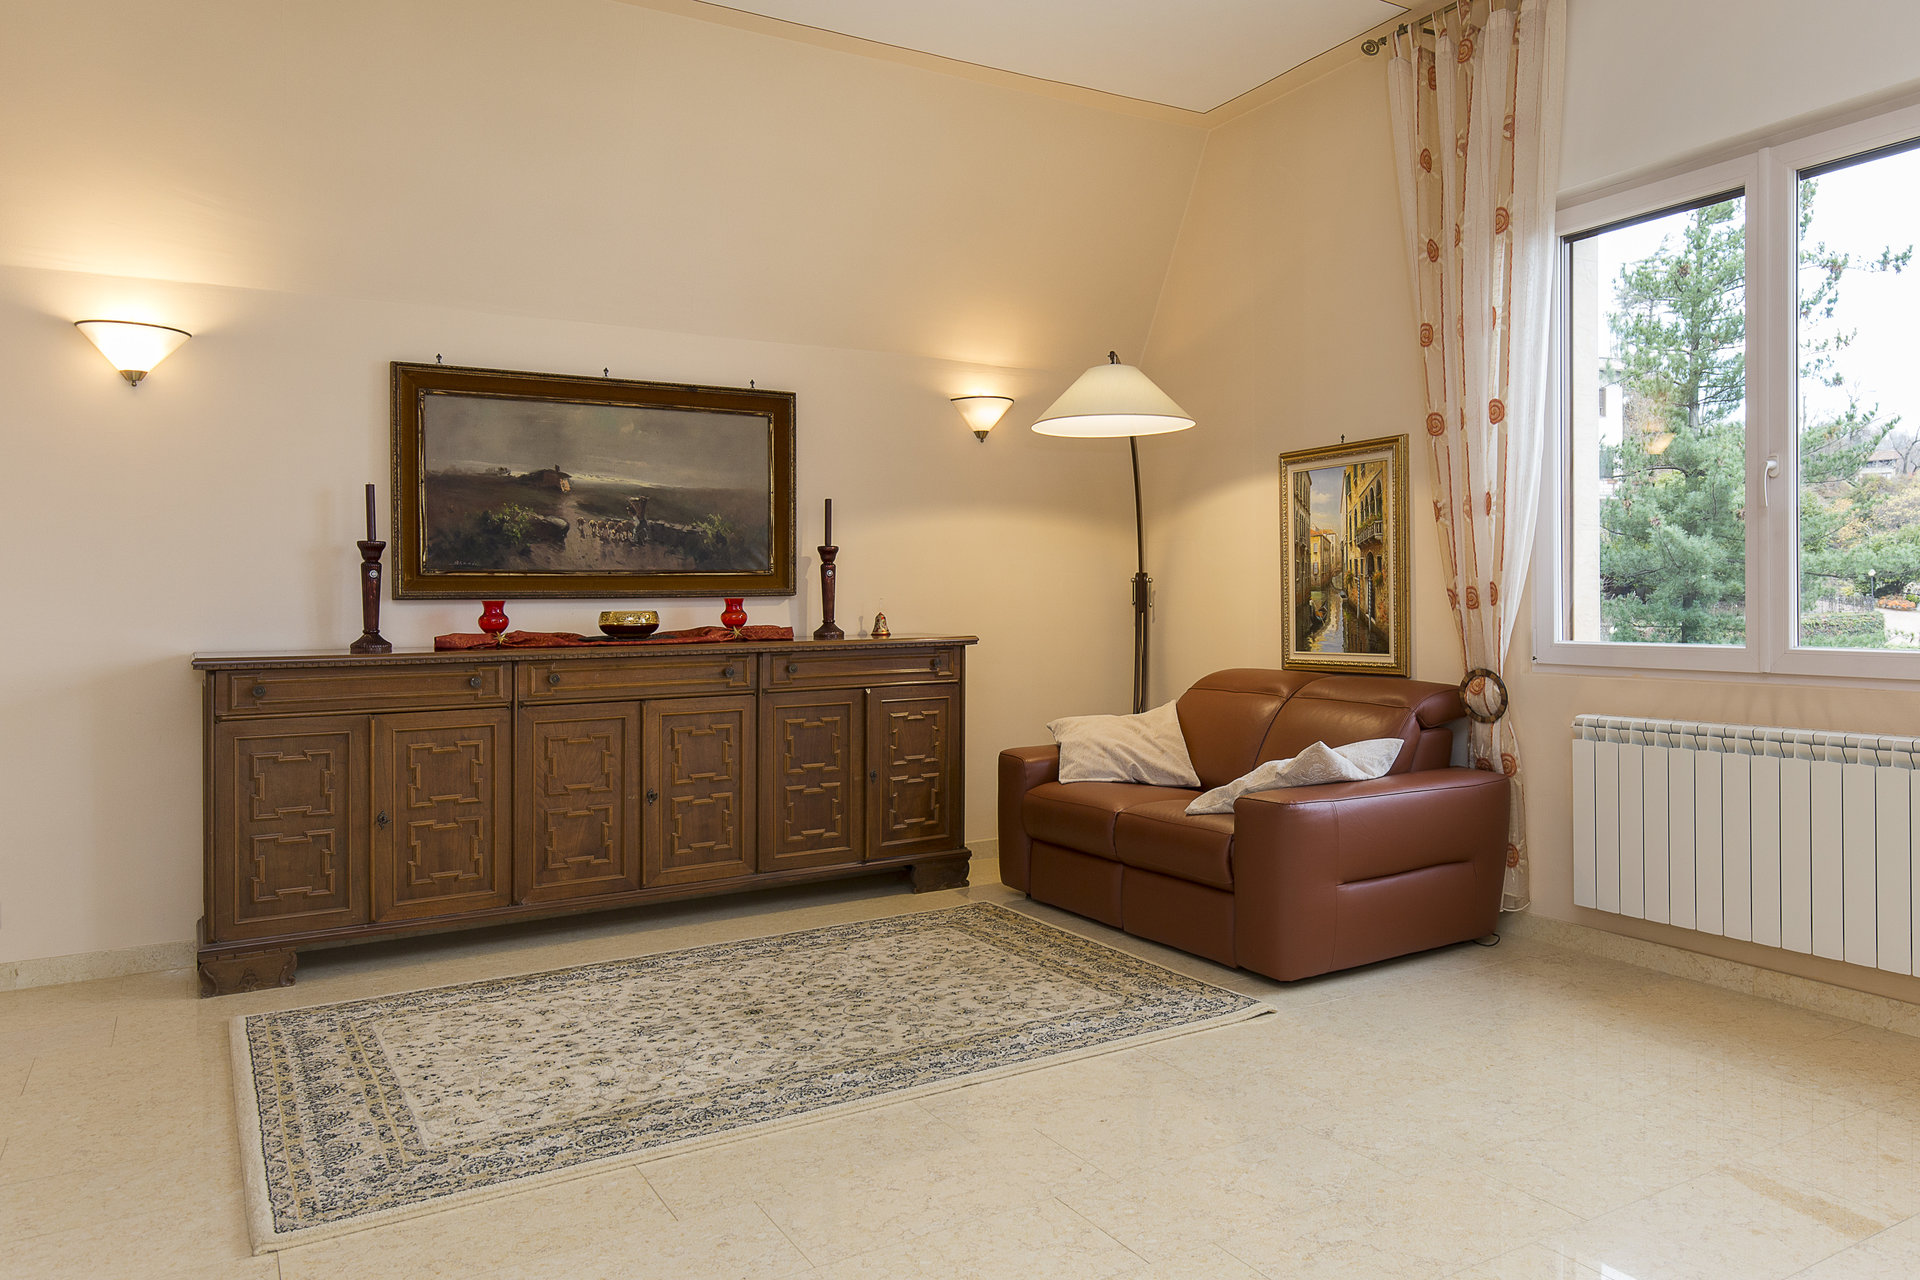 Villa for sale in Stresa with park and view on Borromean islands - sitting room